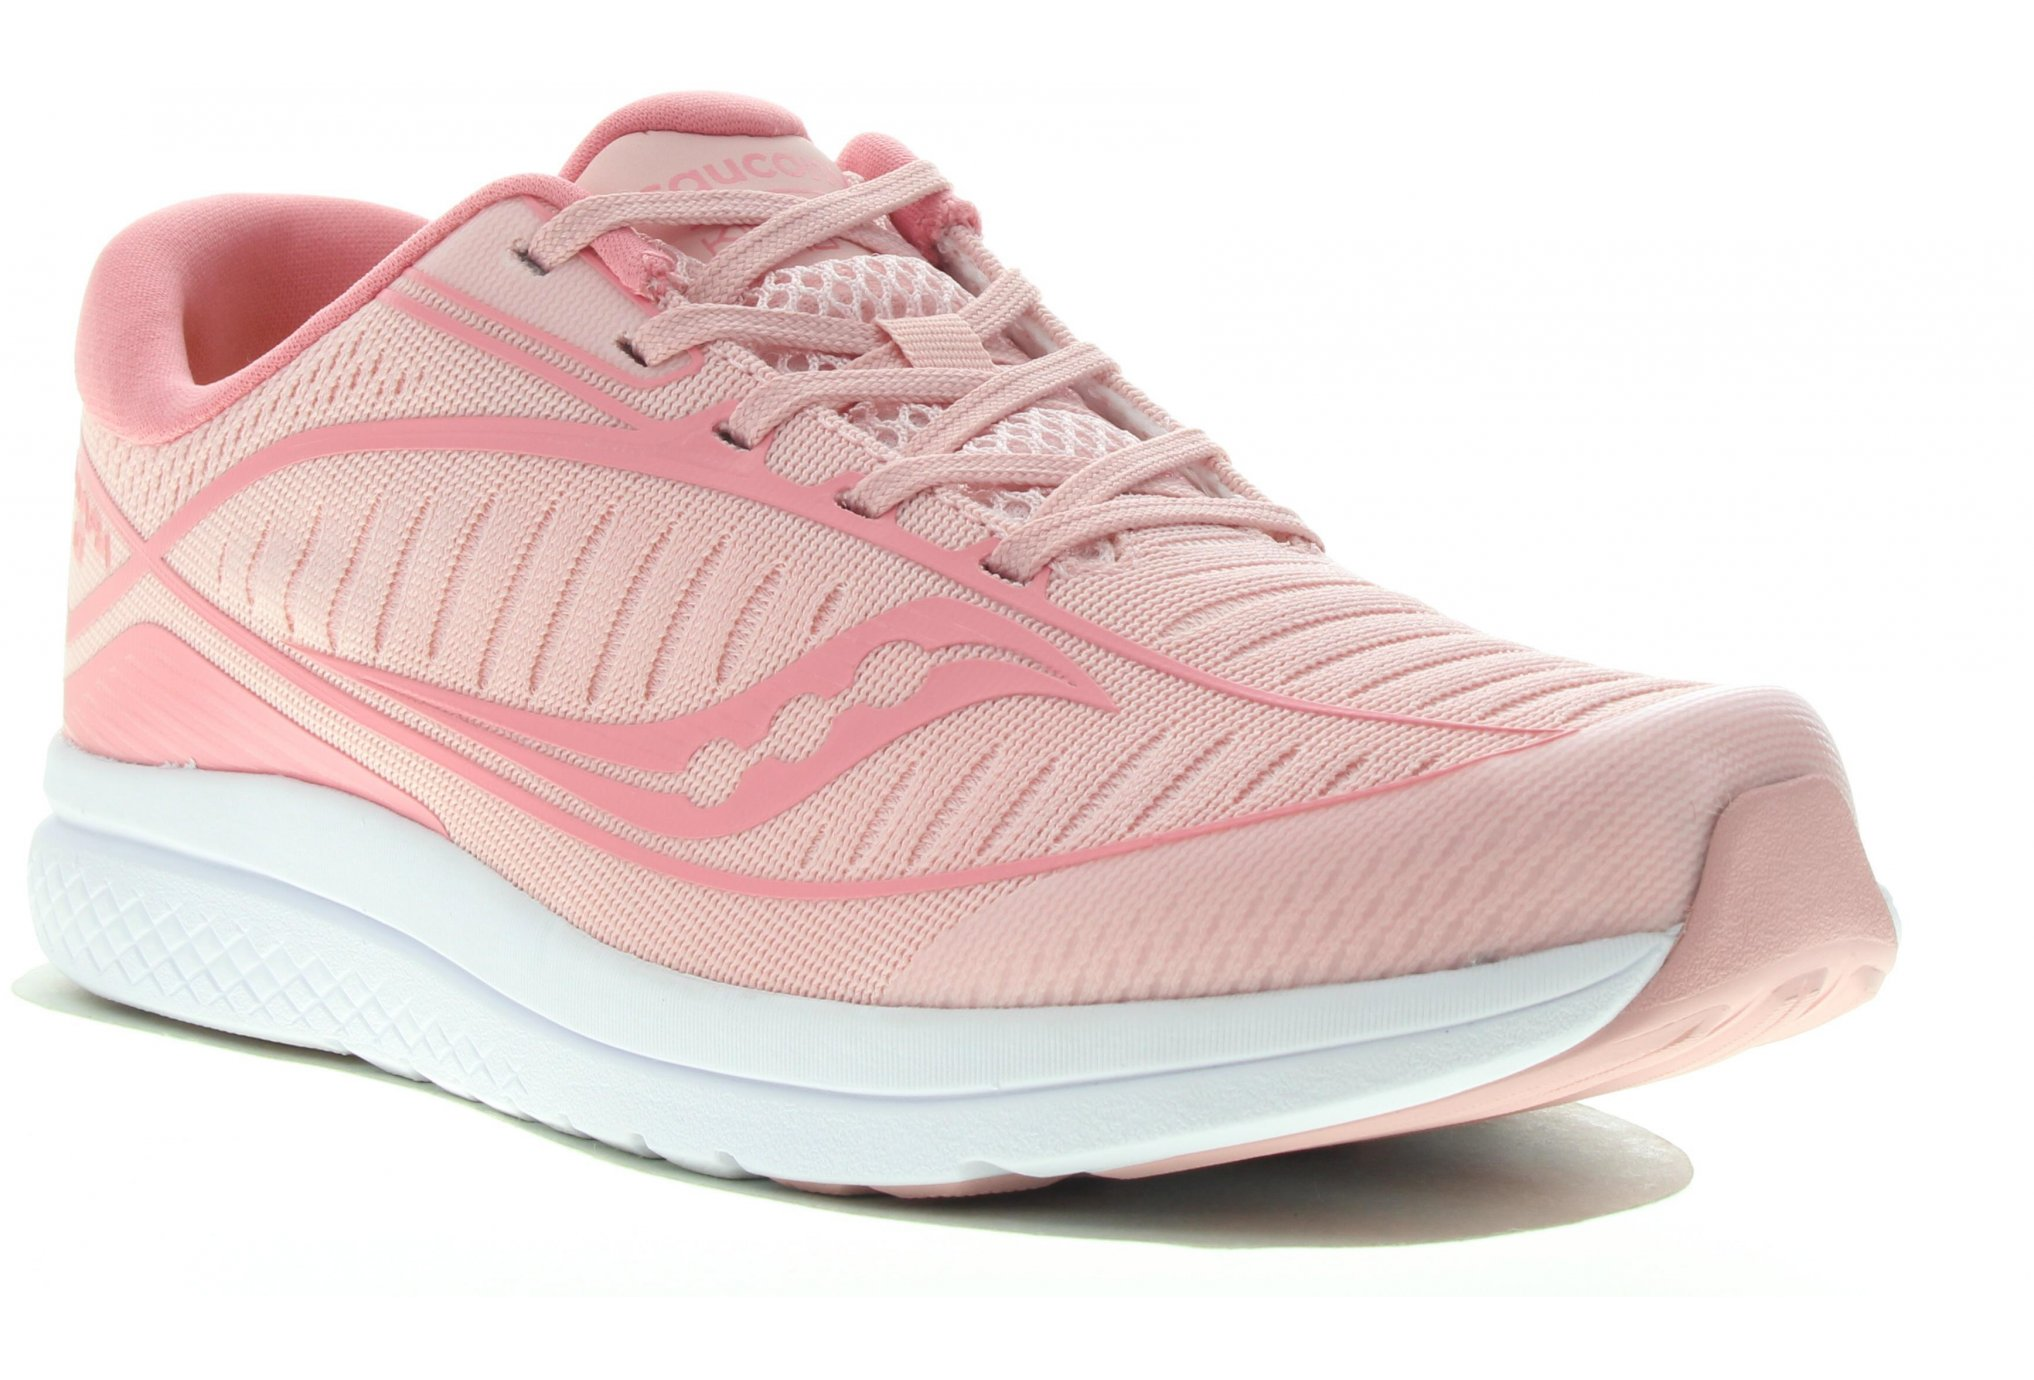 Saucony Kinvara 10 Fille Chaussures running femme